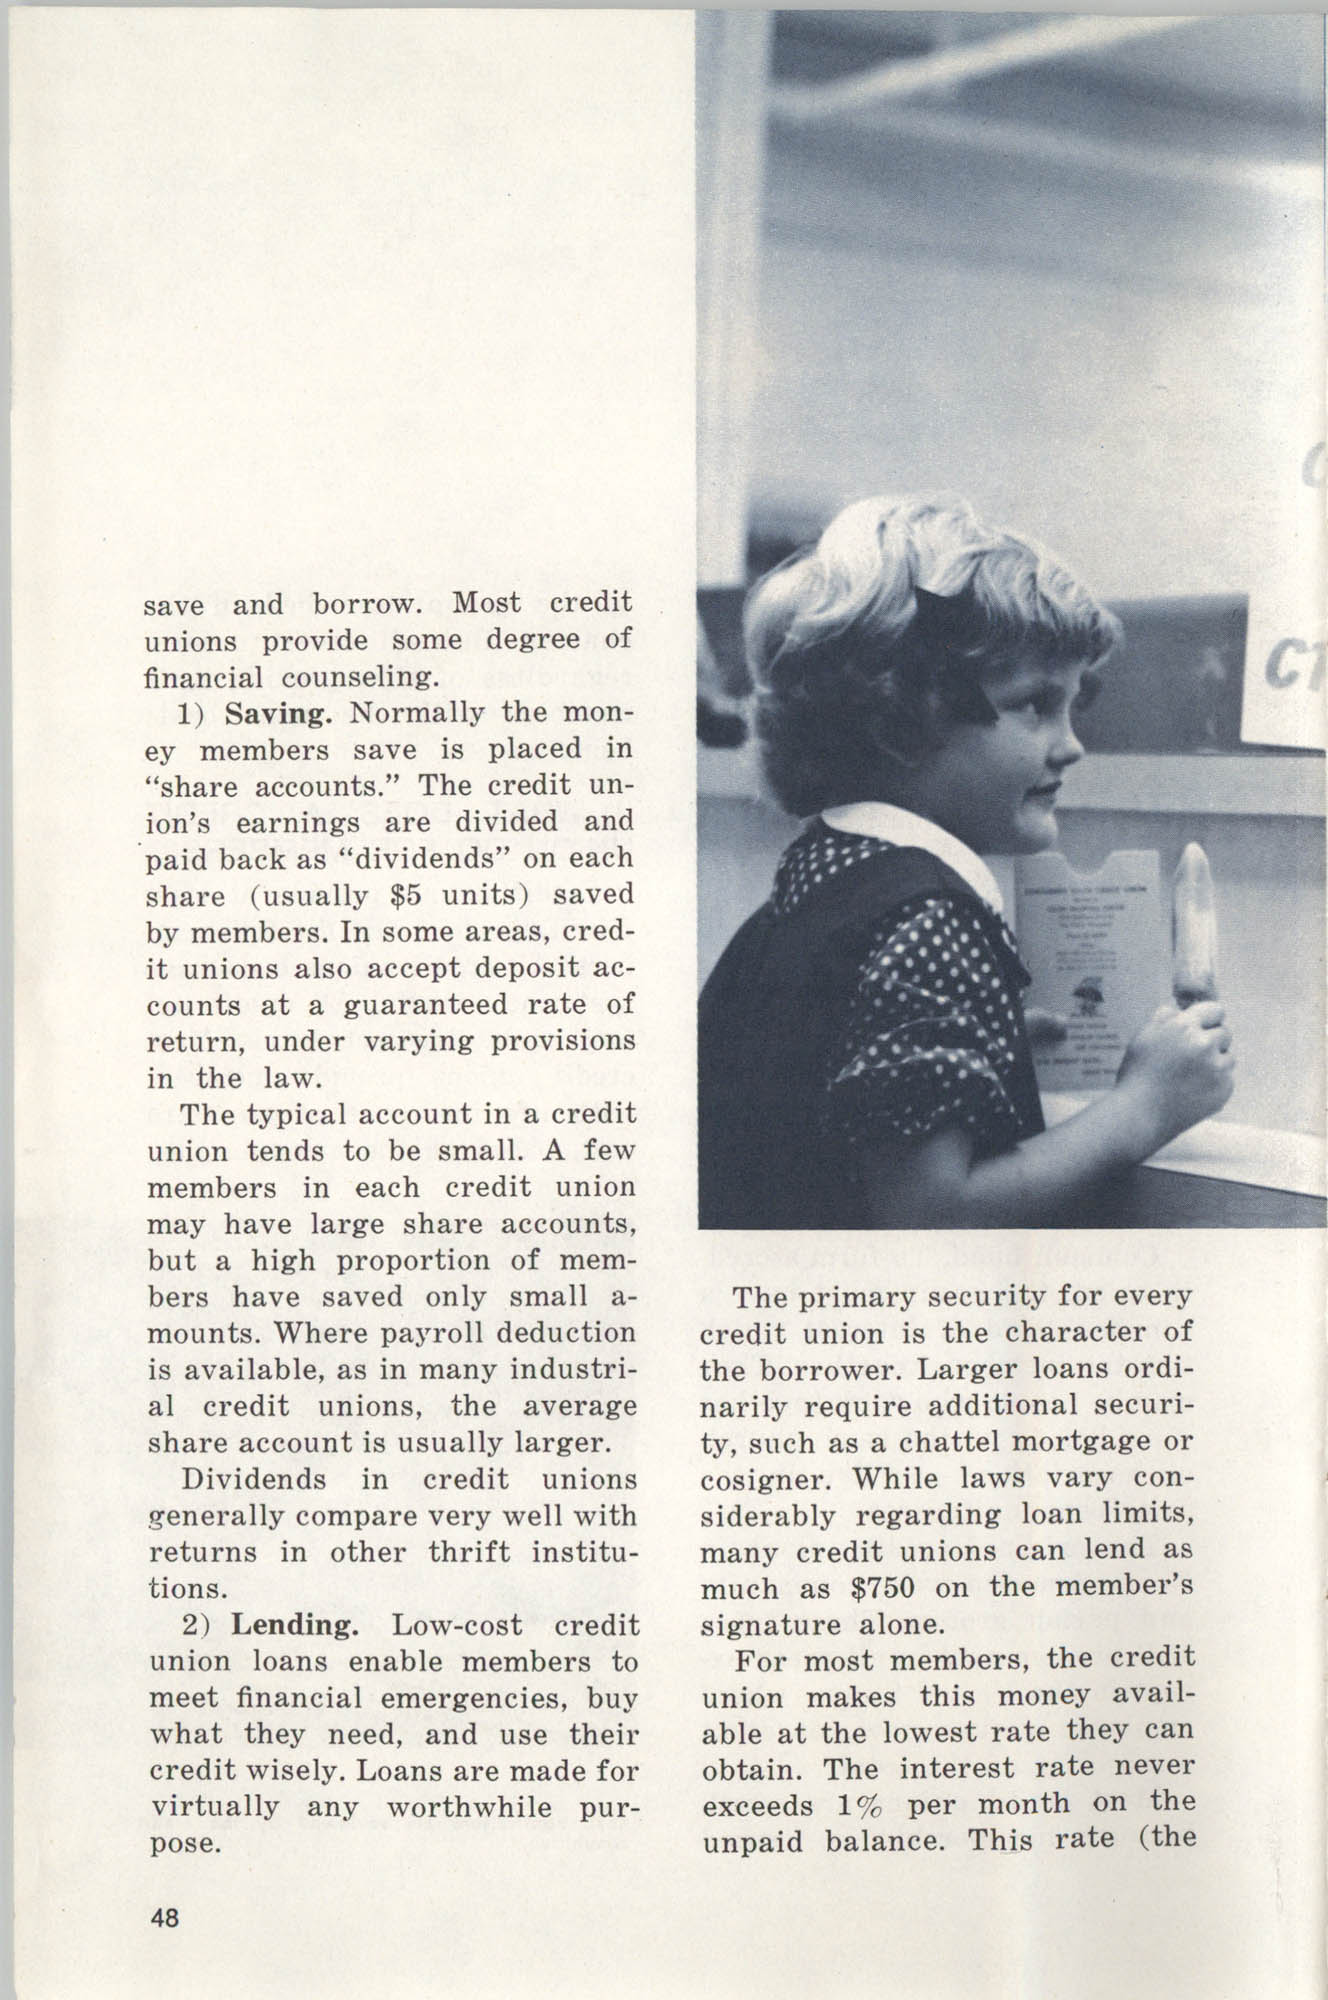 International Credit Union Yearbook, Page 48